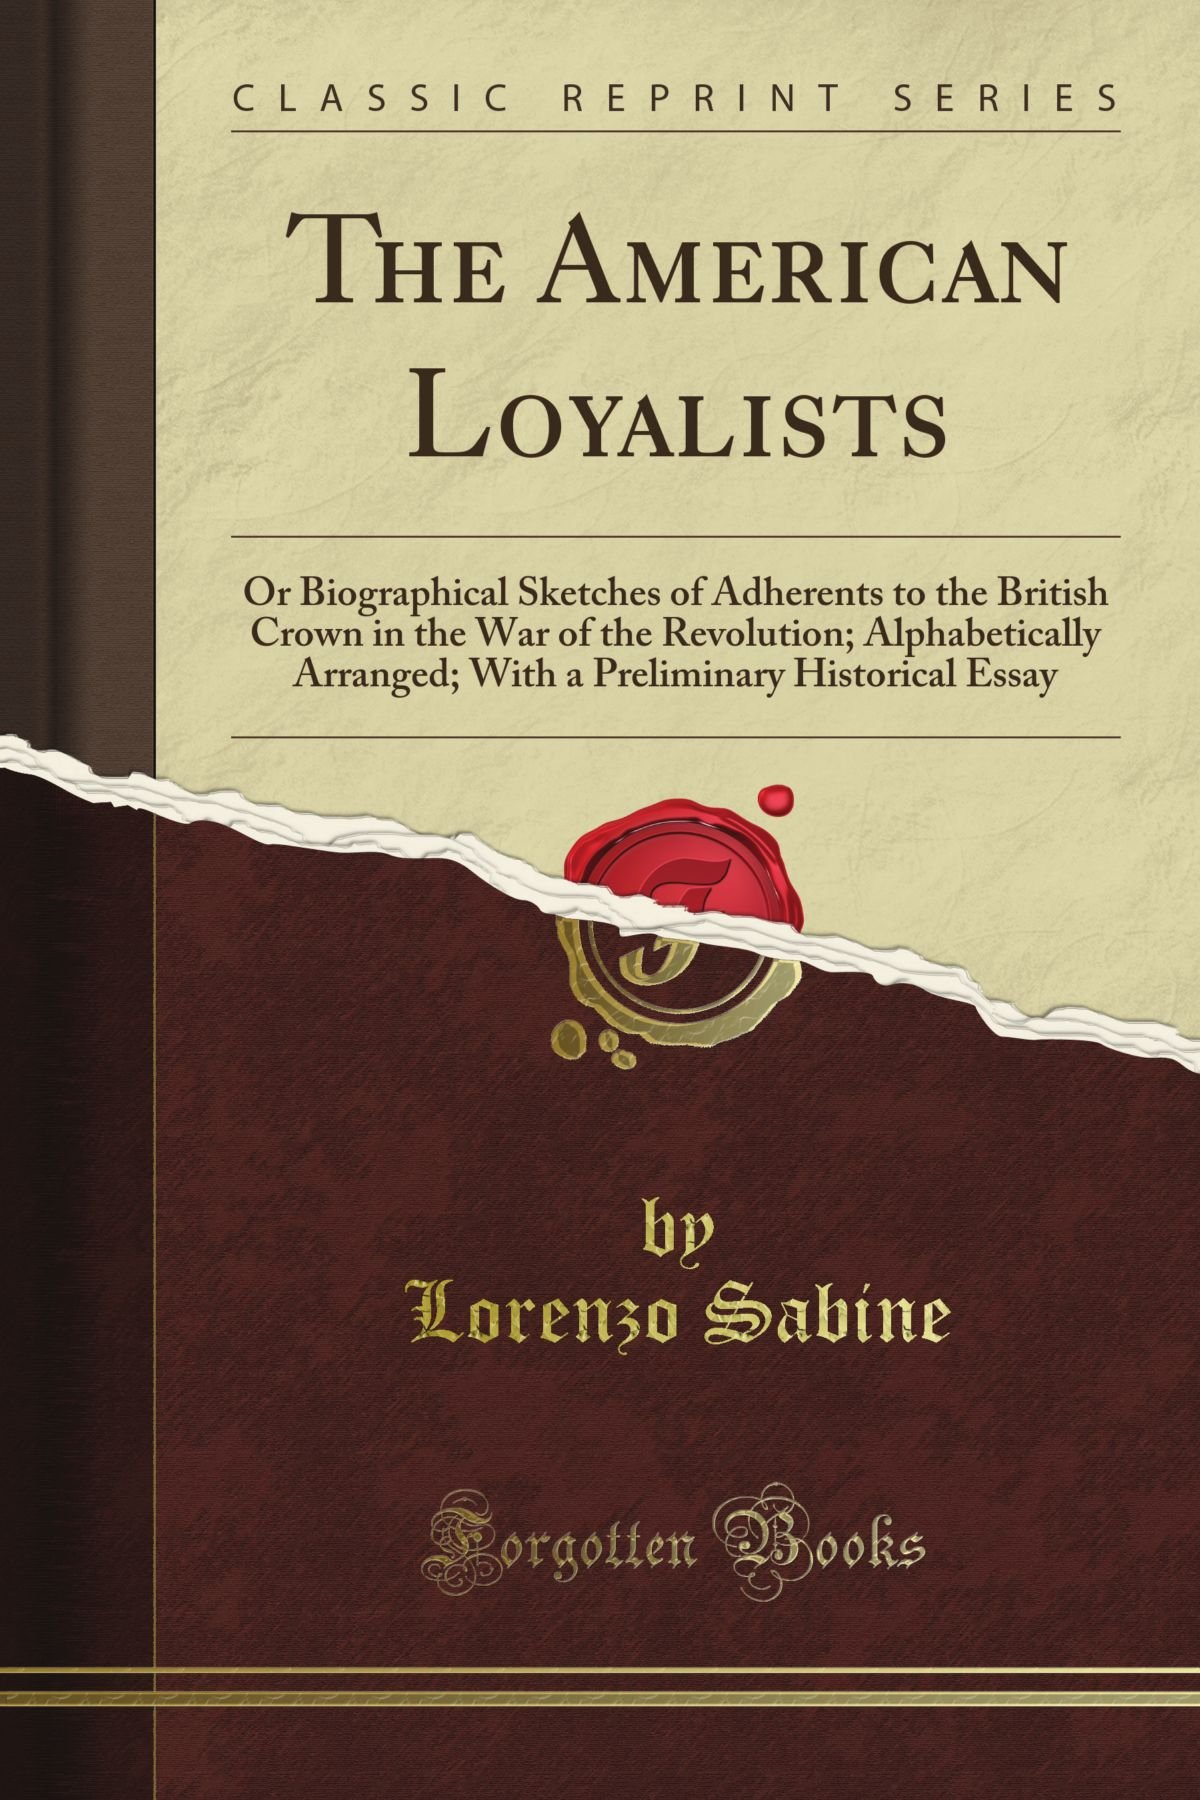 The American Loyalists: Or Biographical Sketches of Adherents to the British Crown in the War of the Revolution; Alphabetically Arranged; With a Preliminary Historical Essay (Classic Reprint) ebook